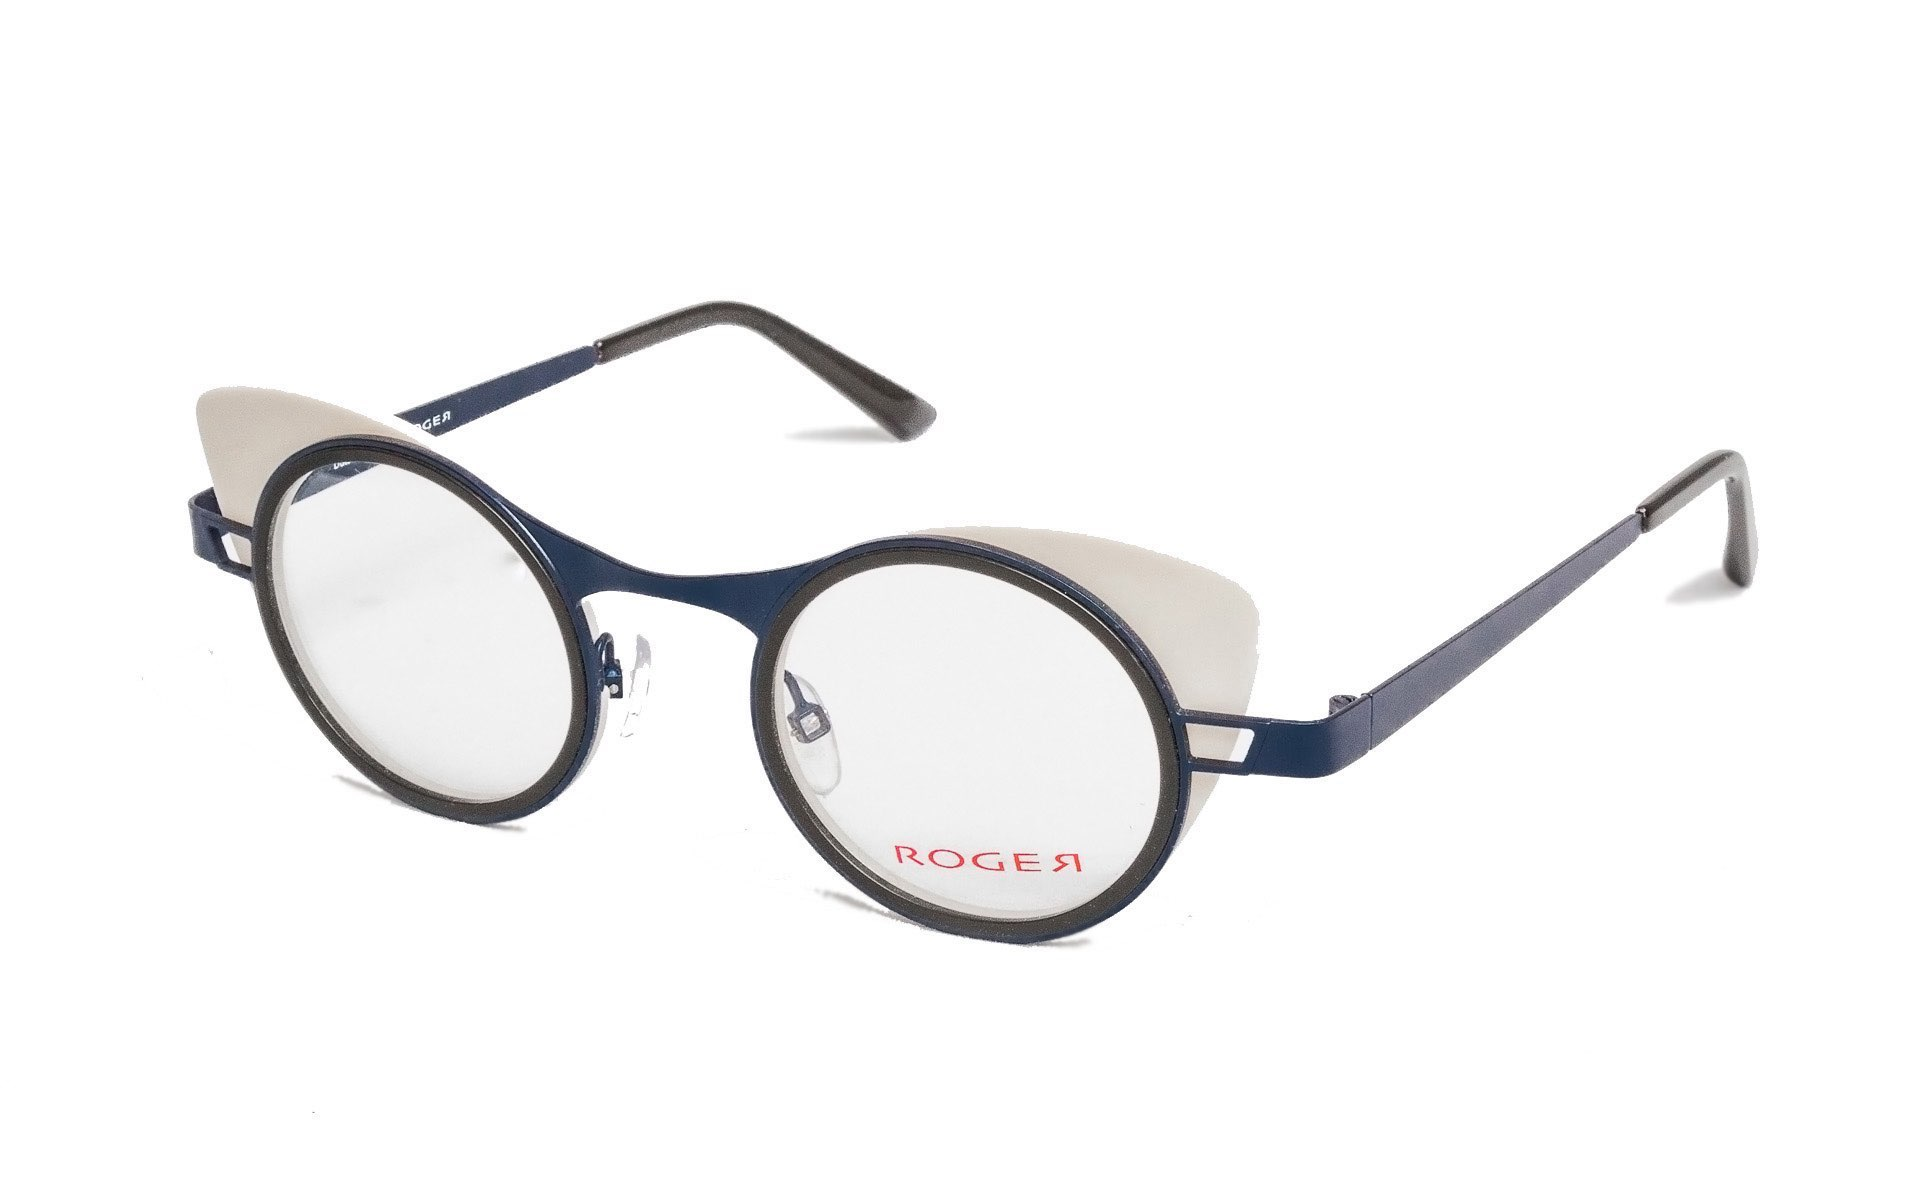 Oakley Gascan Vs Oakley Crankshaft together with Roger Eyewear in addition Trucos Maquillaje Chicas Usan Lentes also The Store likewise Costa Reefton 2. on ray ban bifocals